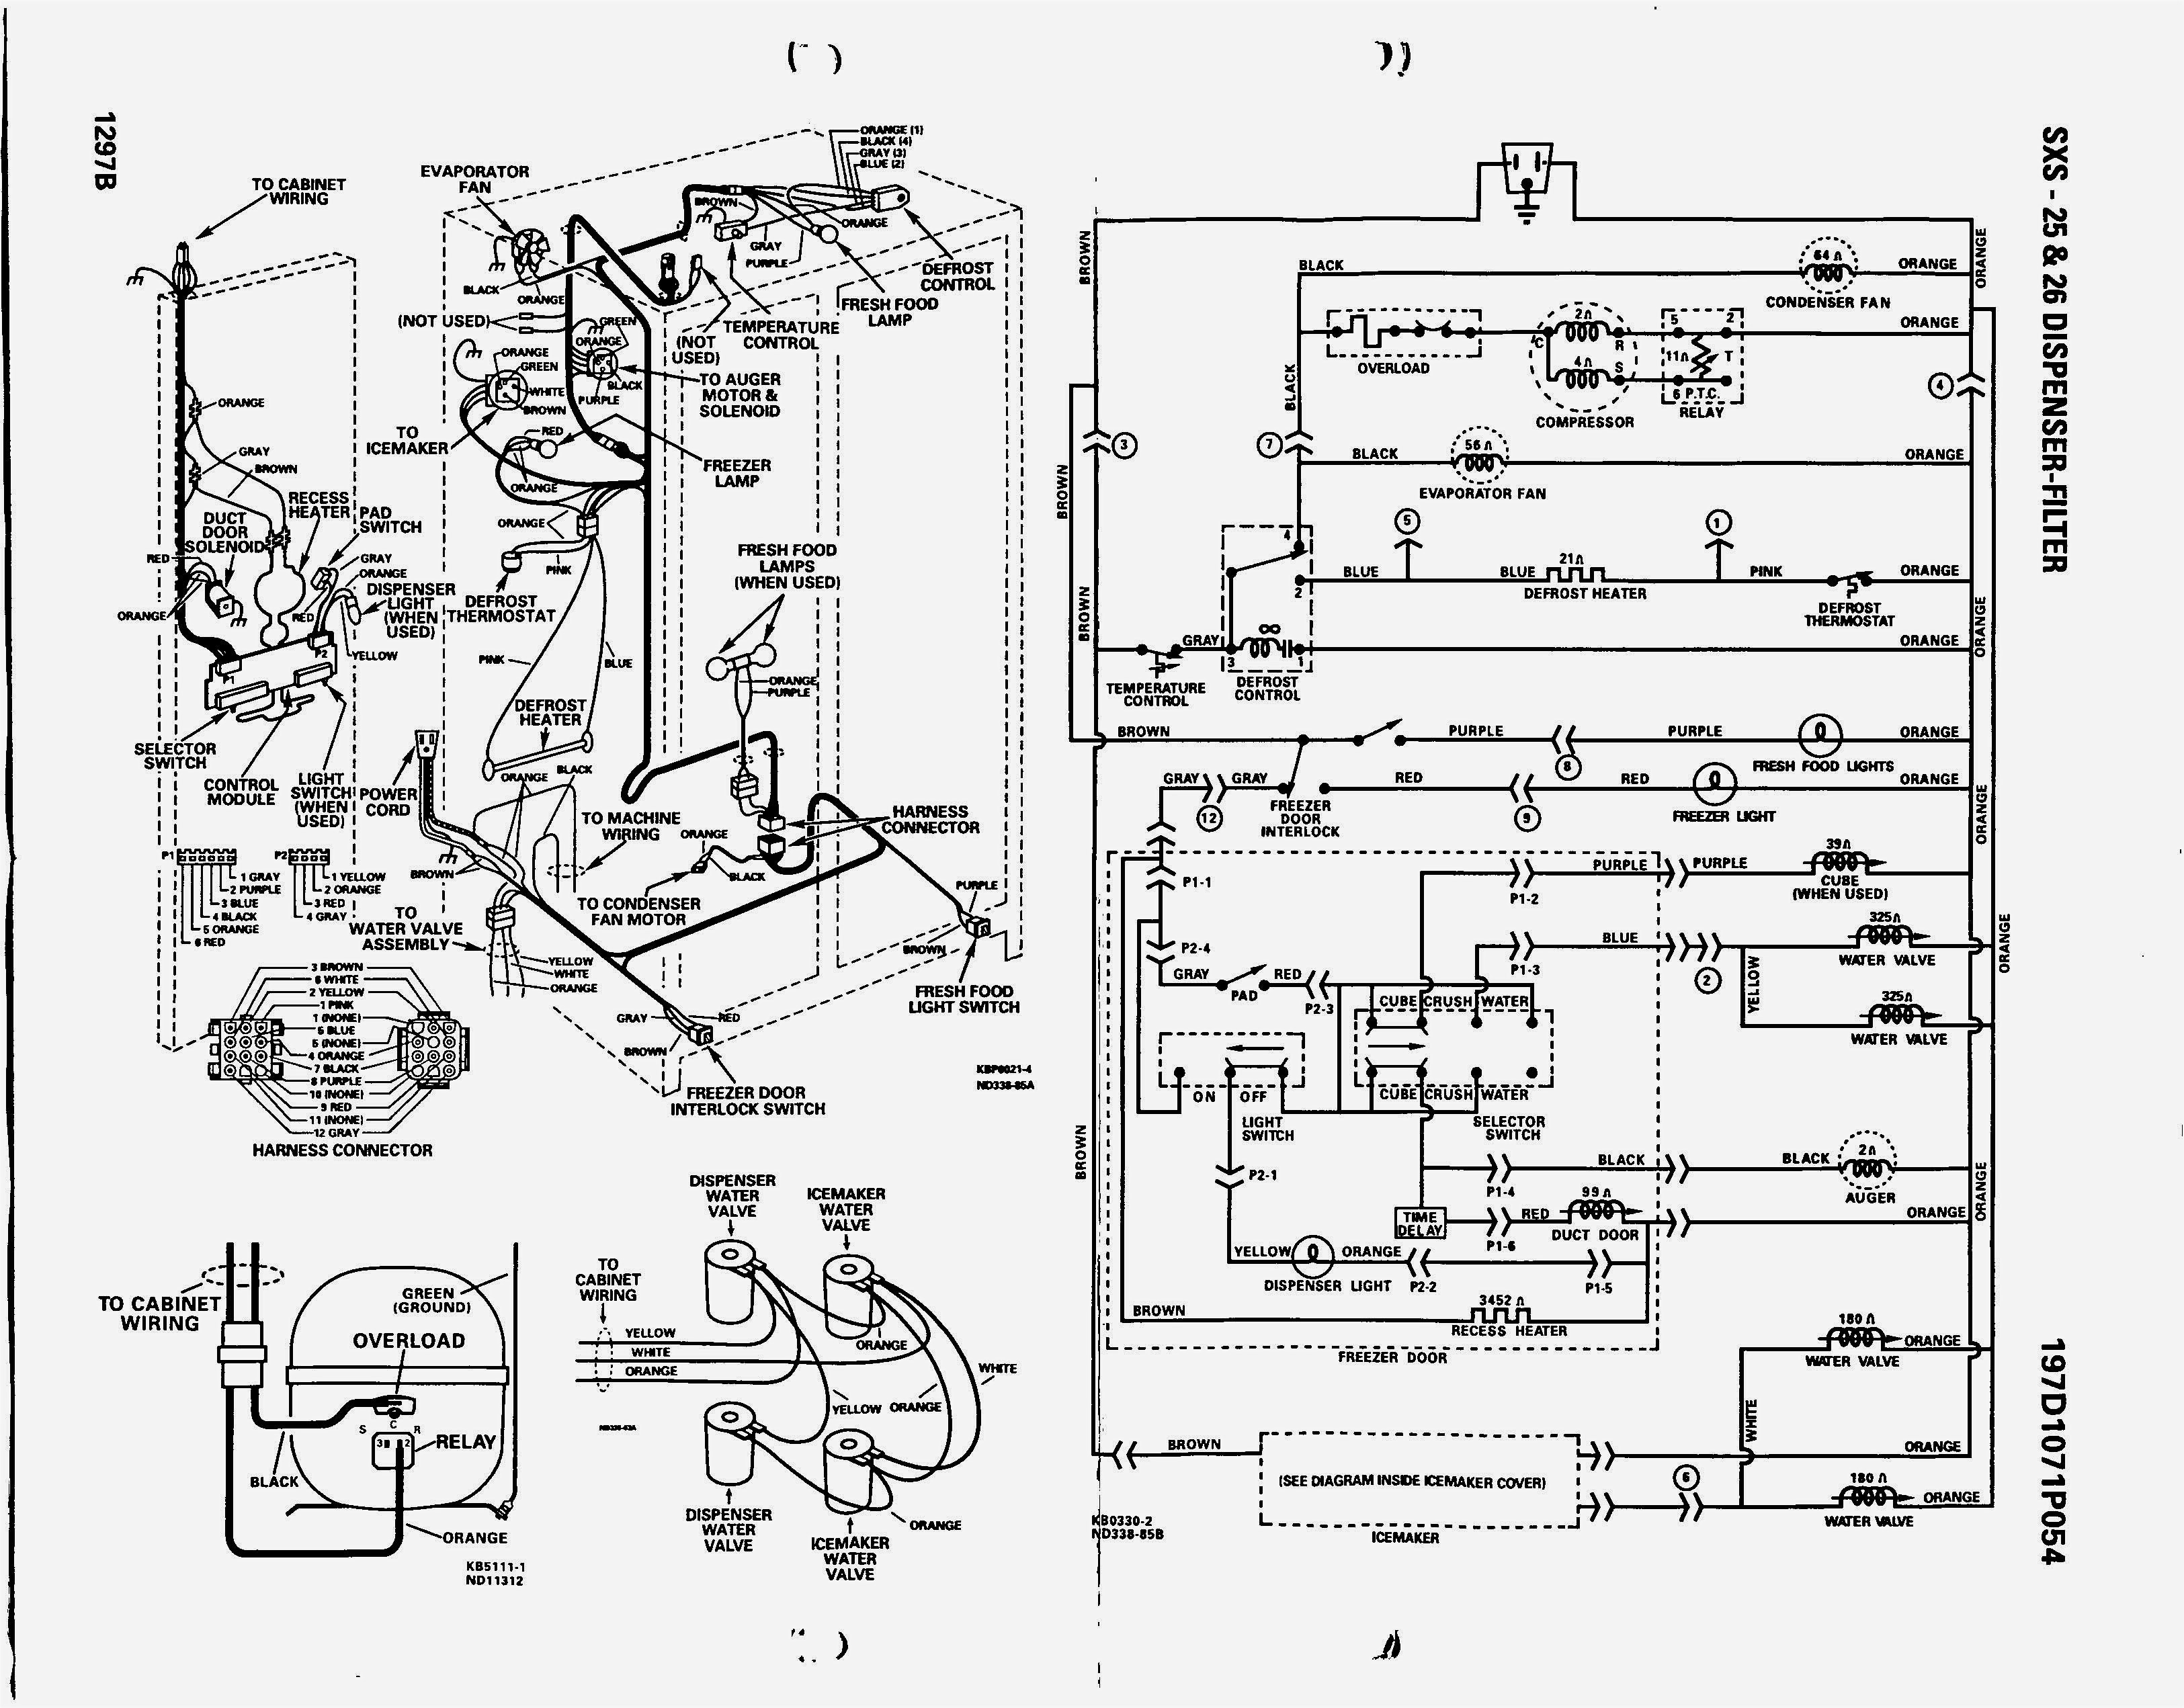 Submersible Well Pump Wiring Diagram Simple Wiring Diagram For Well - 3 Wire Well Pump Wiring Diagram